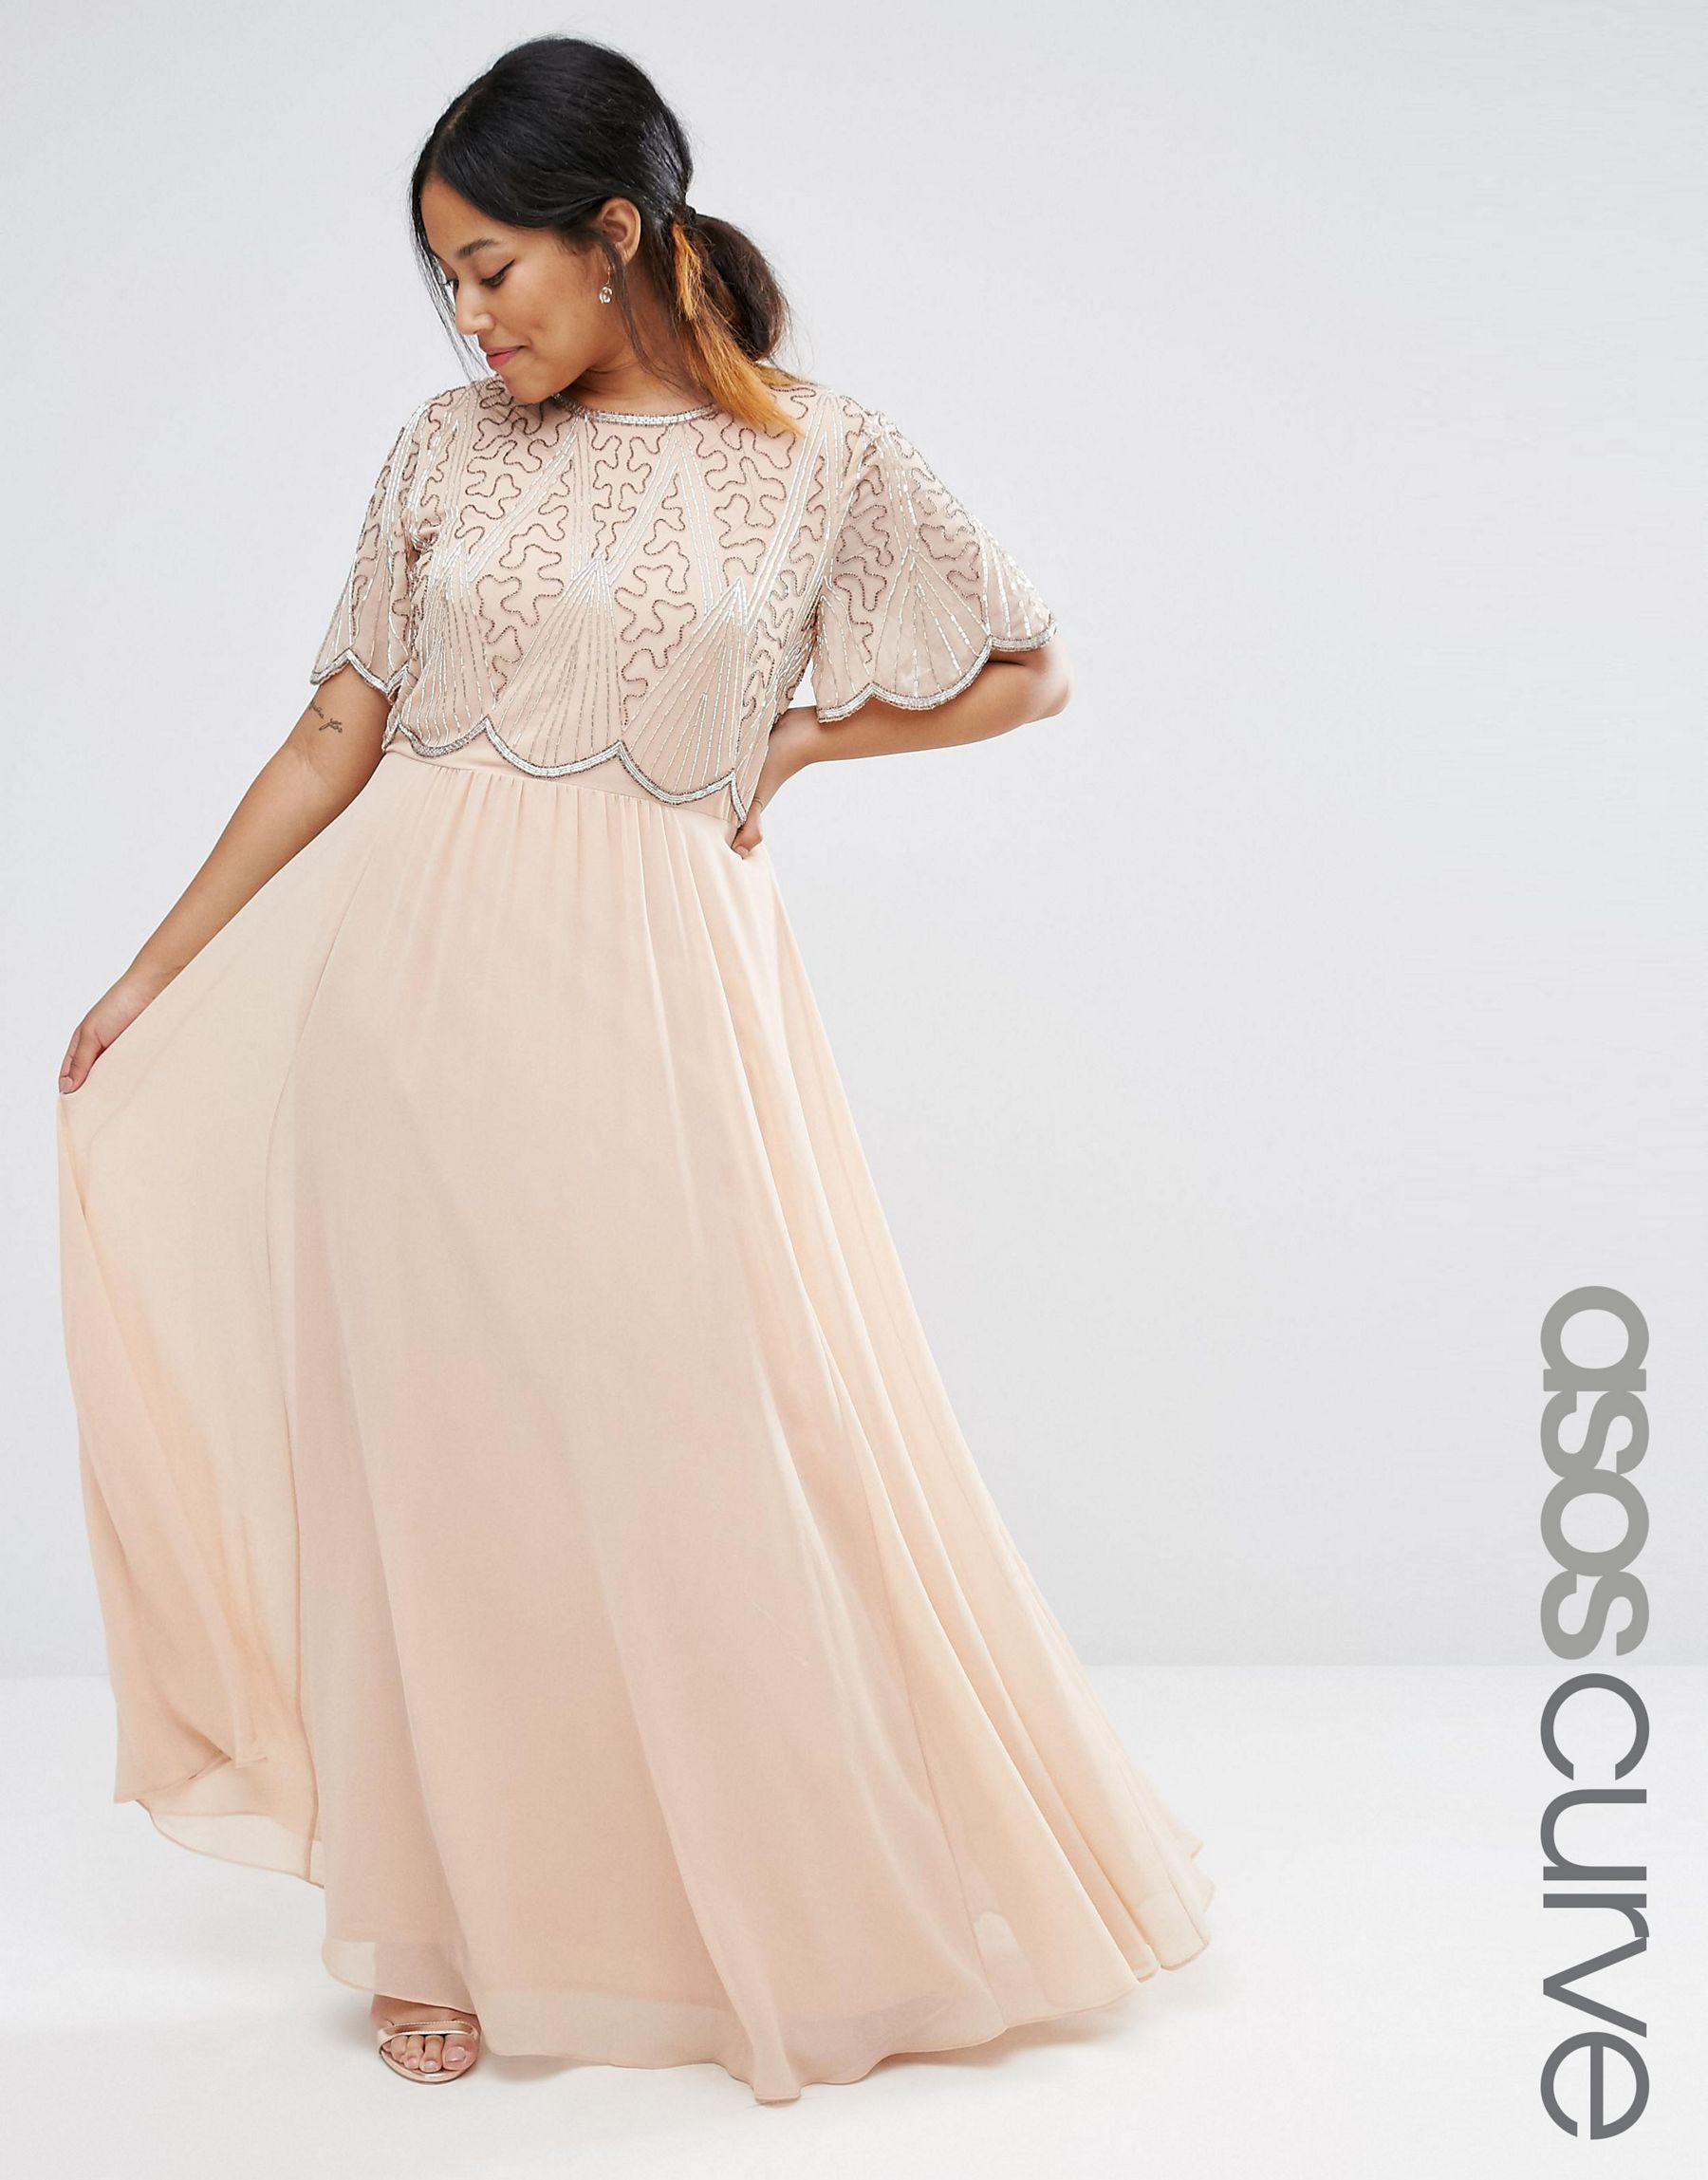 Plus Size Evening Dresses Asos | Saddha